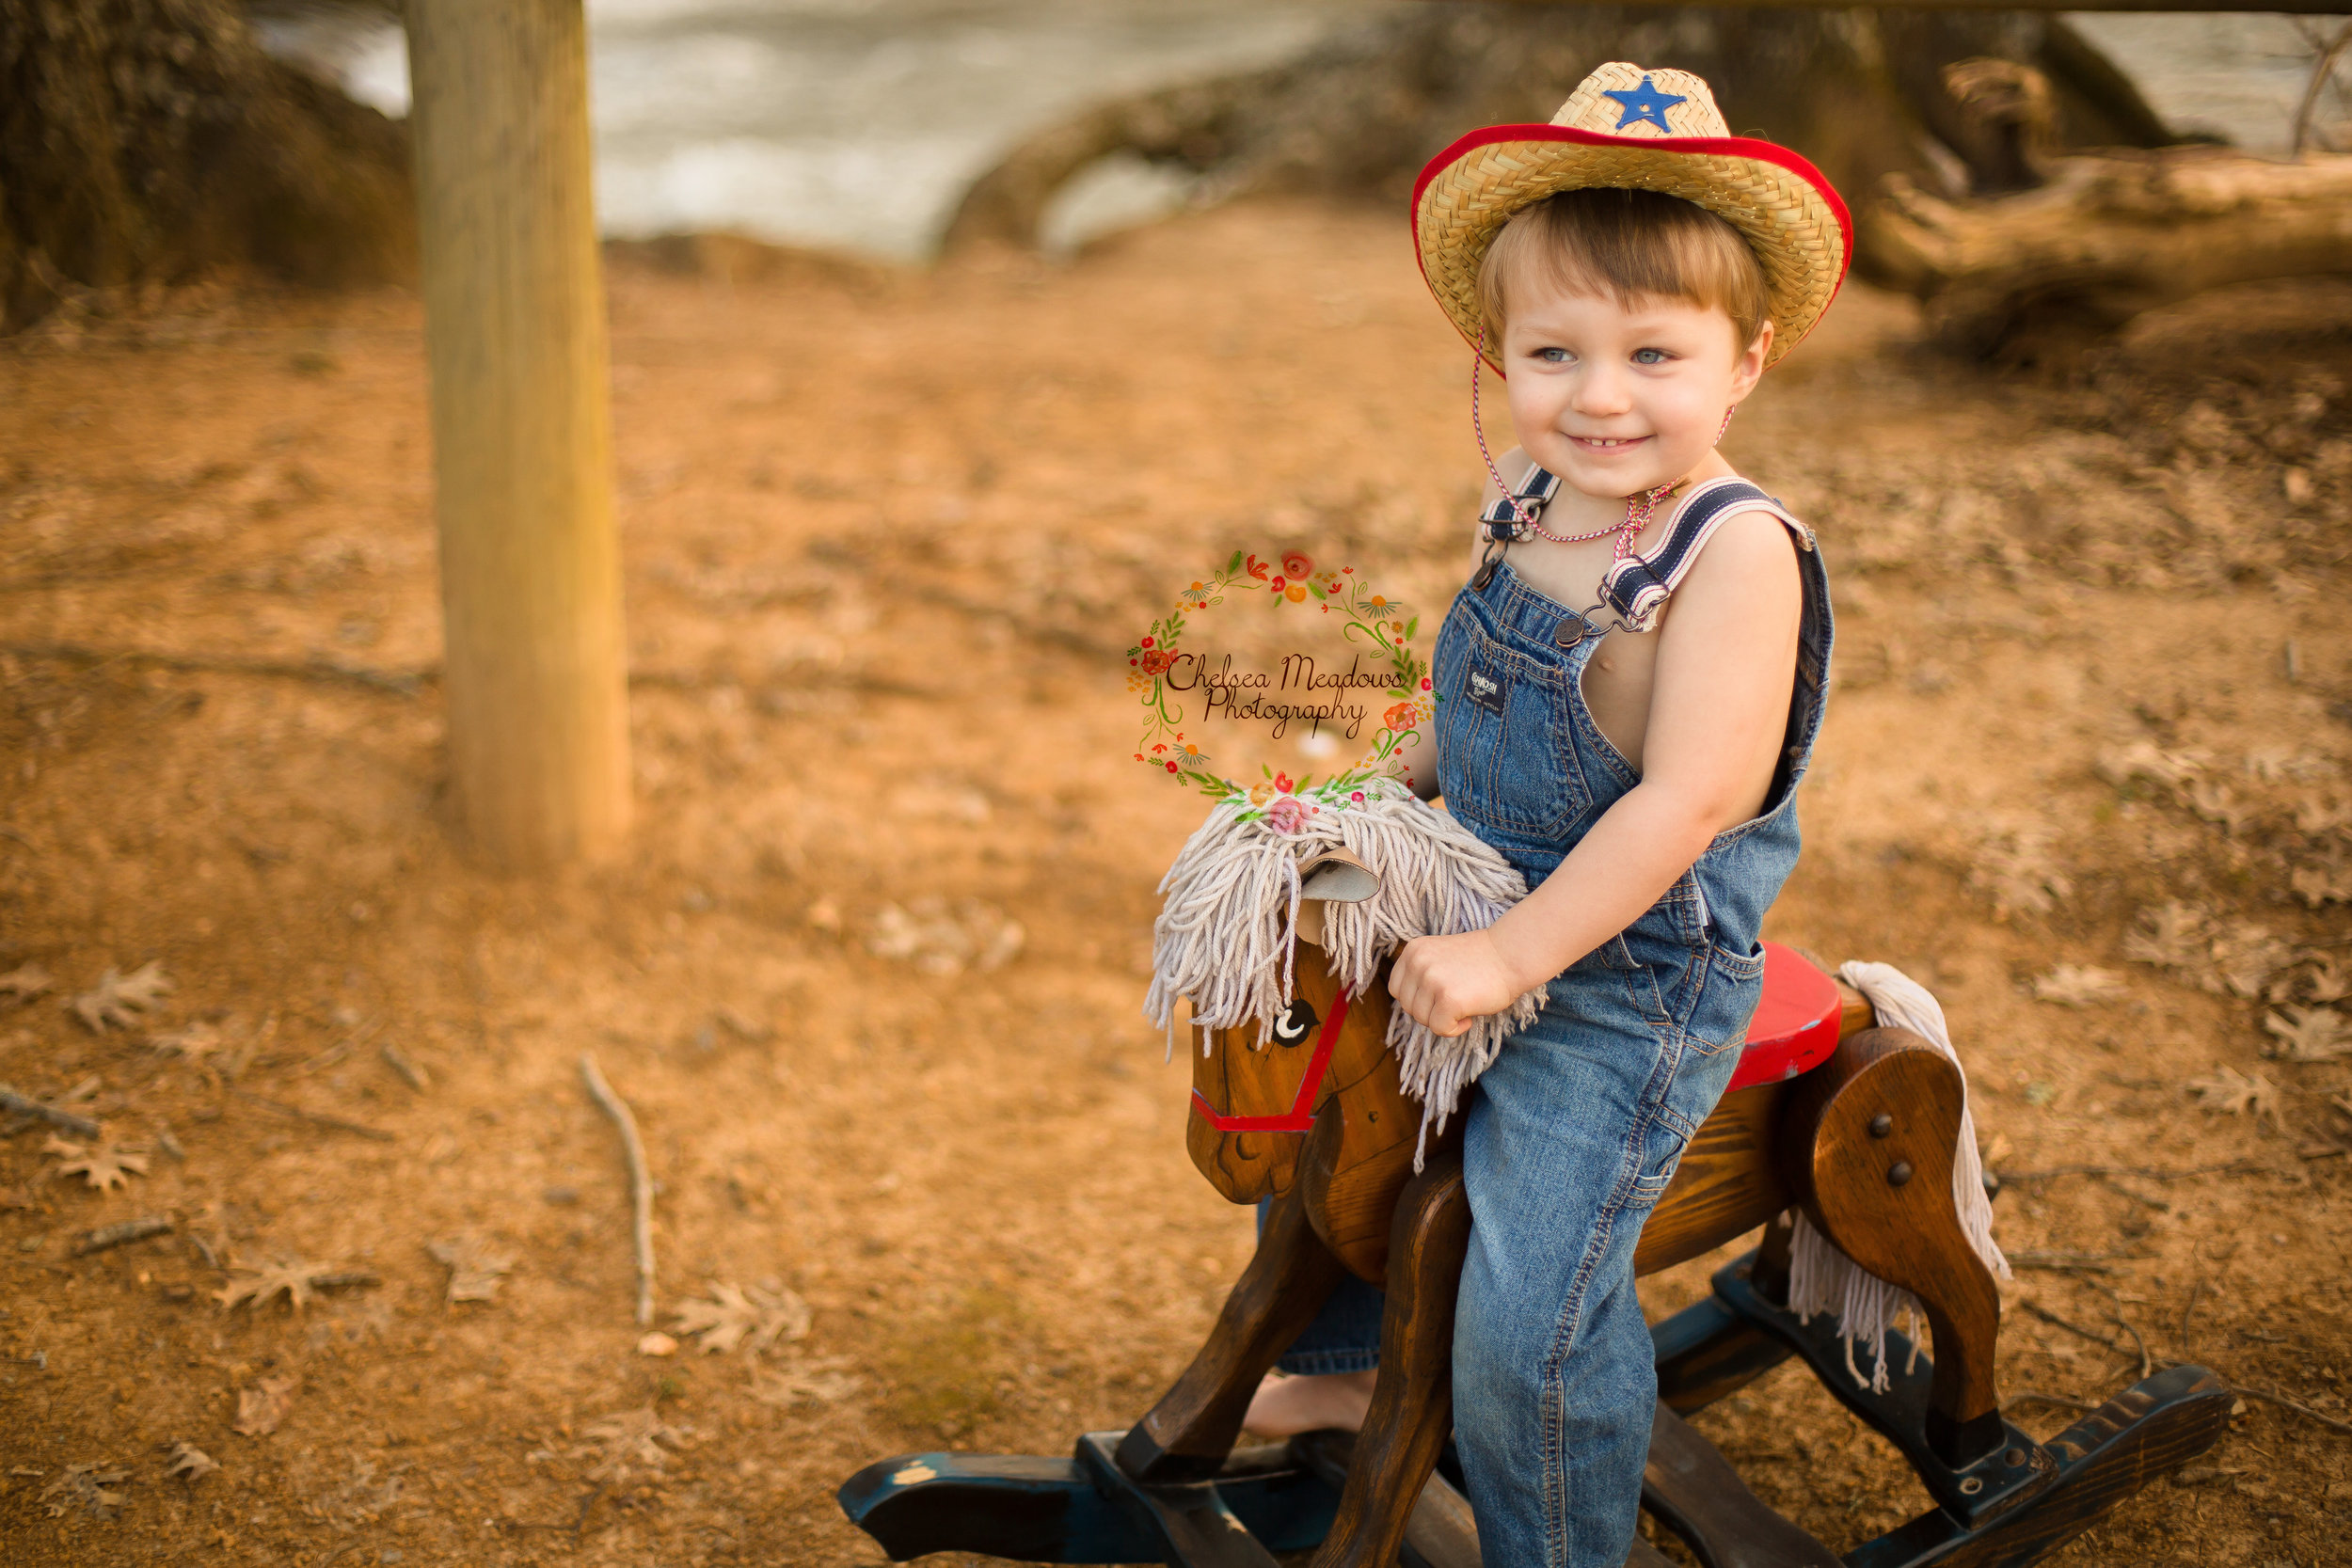 Grayson Cowboy Photos - Nashville family Photographer - Chelsea Meadows Photography (41)_edited-2.jpg